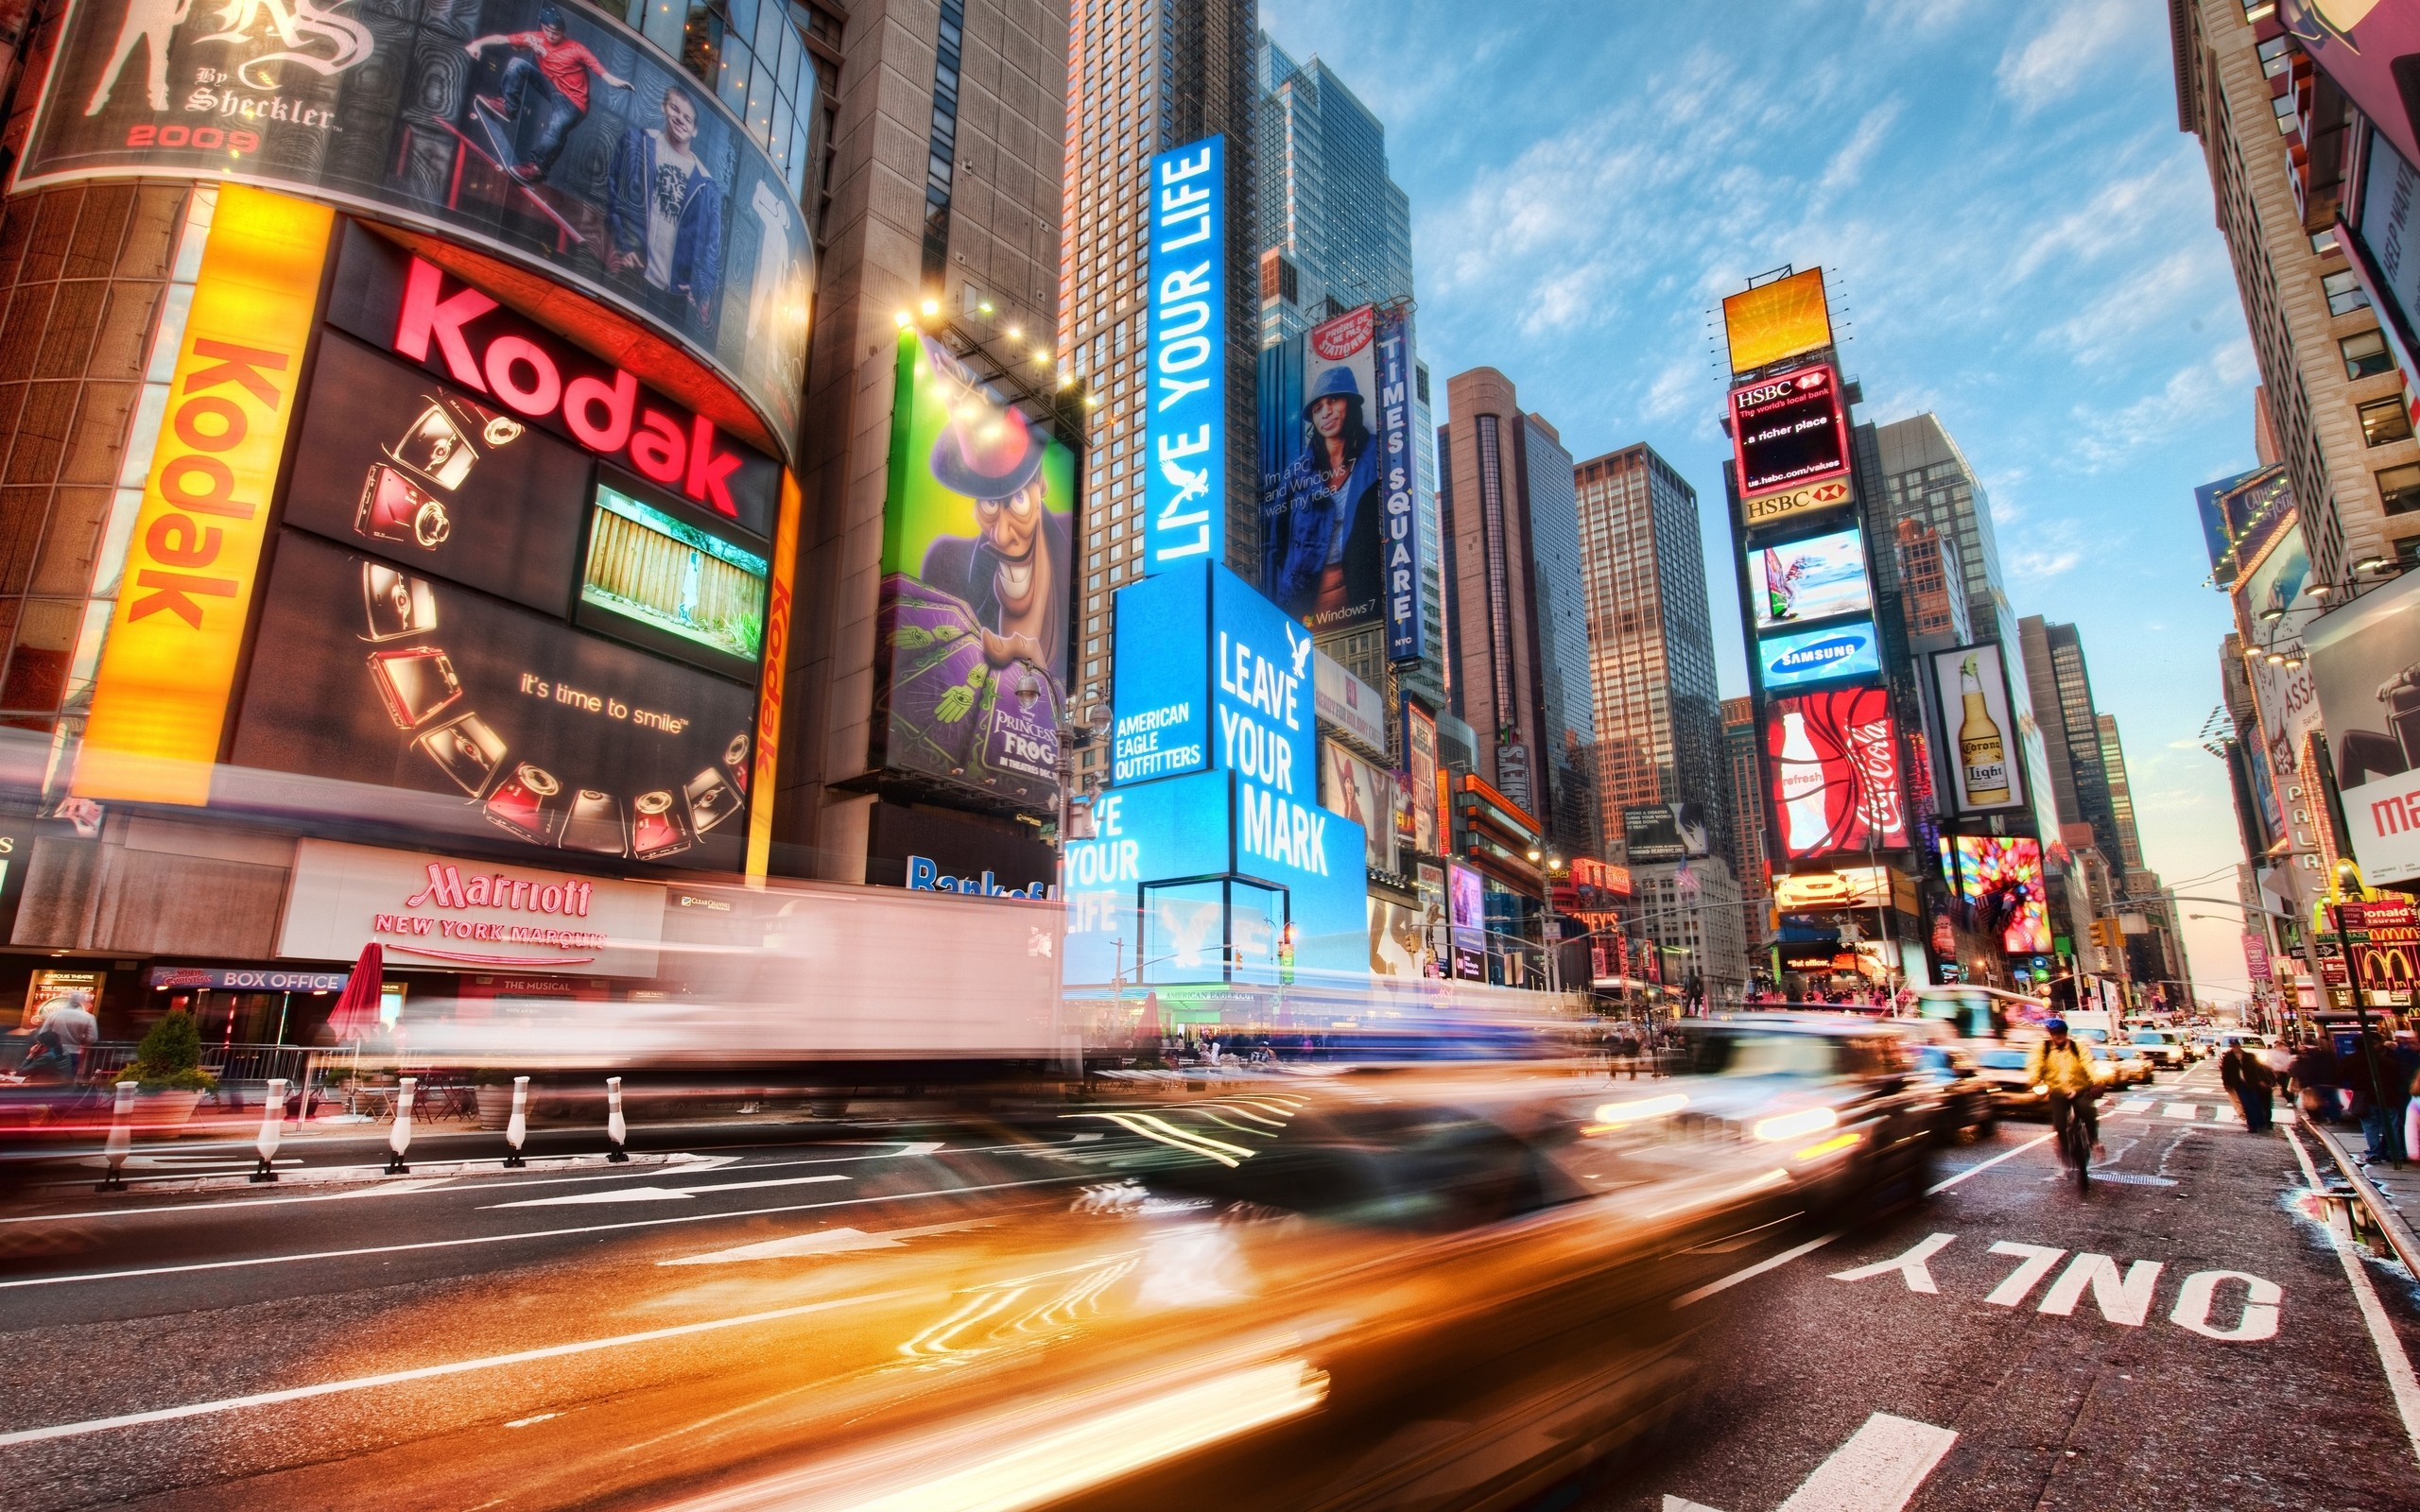 10 Fantastic Hd Times Square Wallpapers